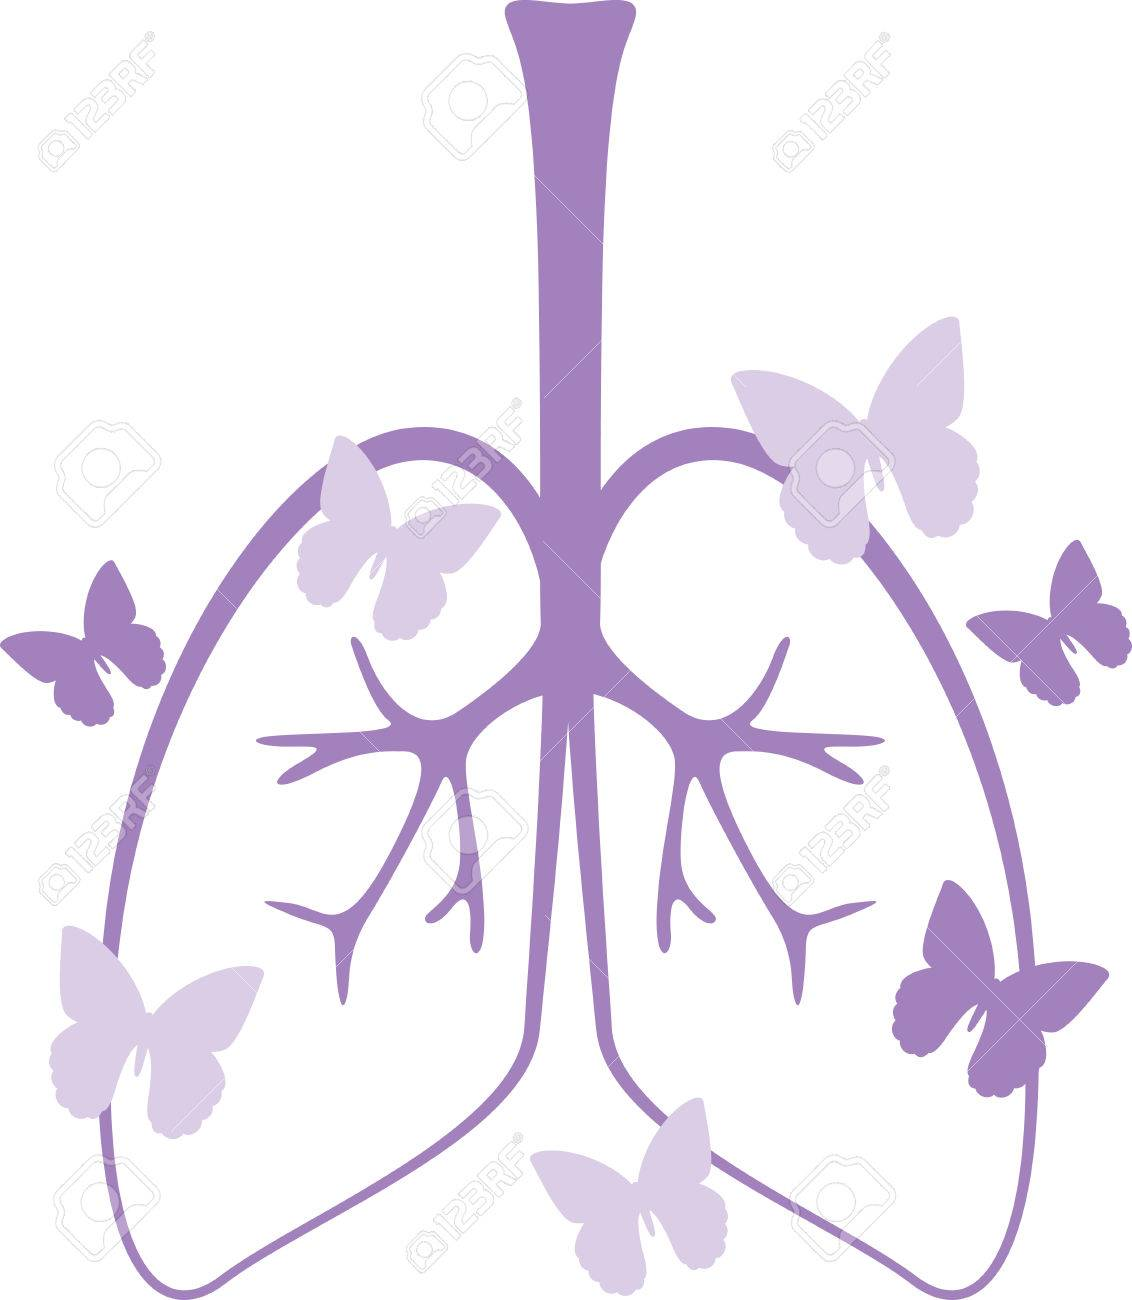 Spread Awareness Of The Fight To Find A Cure For Cystic Fibrosis.